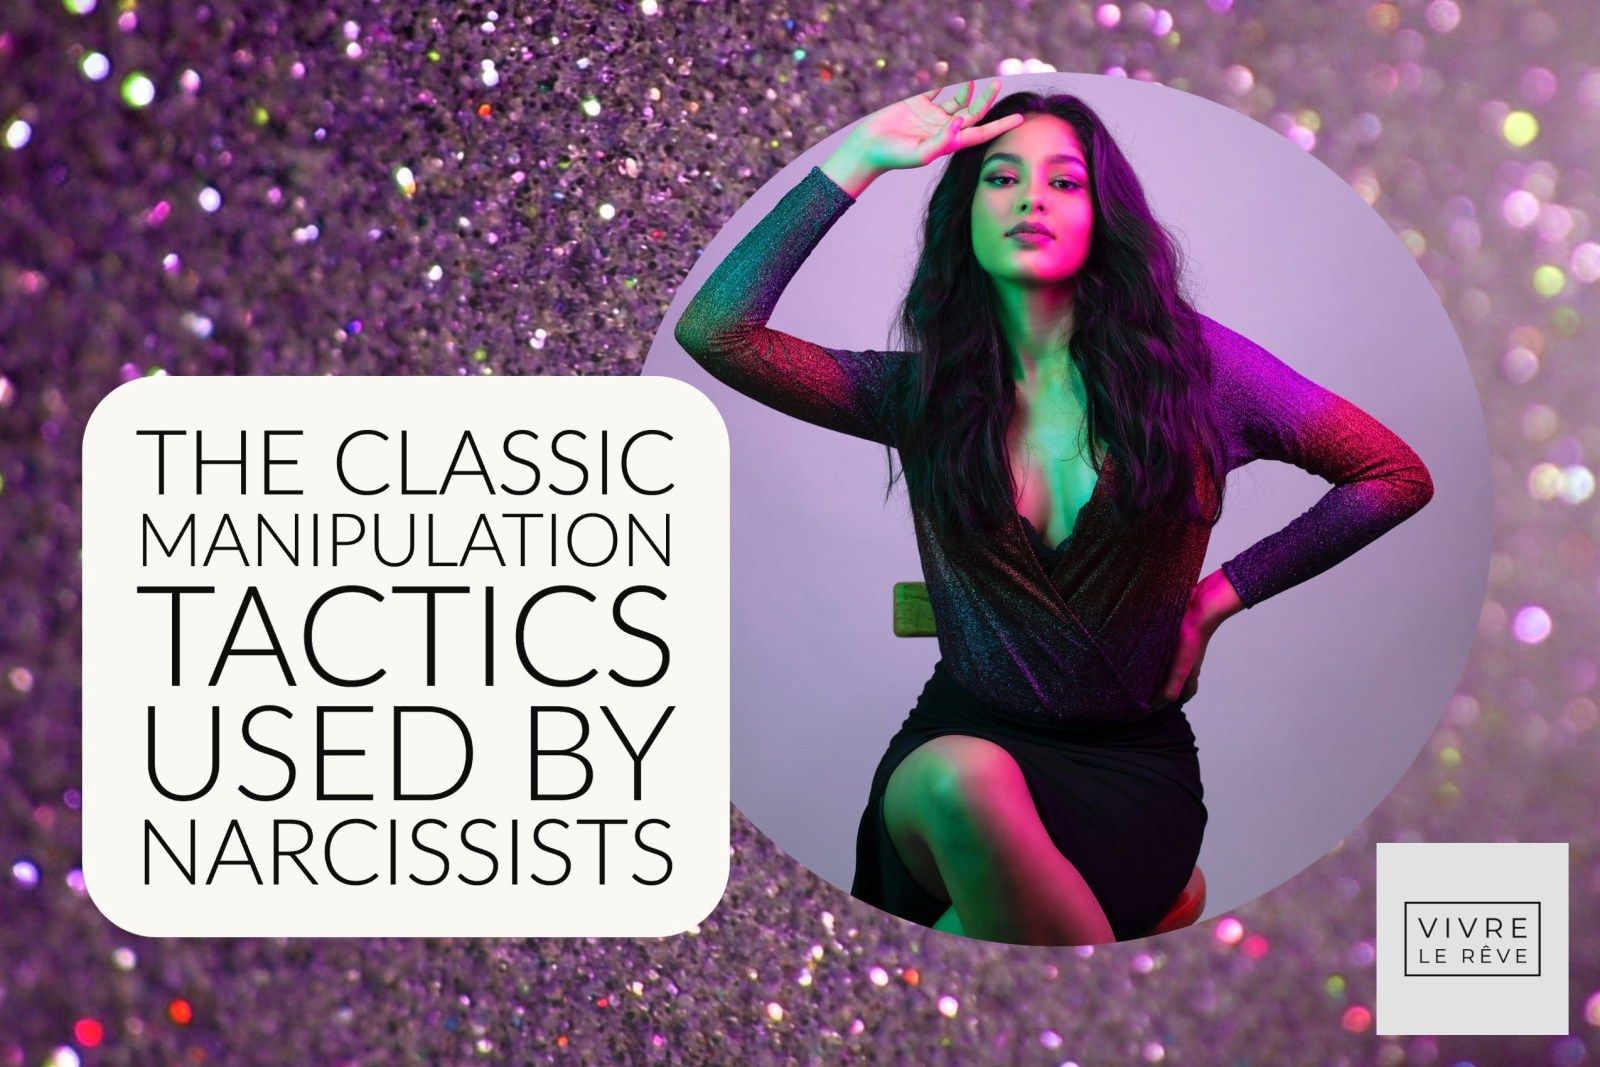 The Classic Manipulation Tactics Used By Narcissists